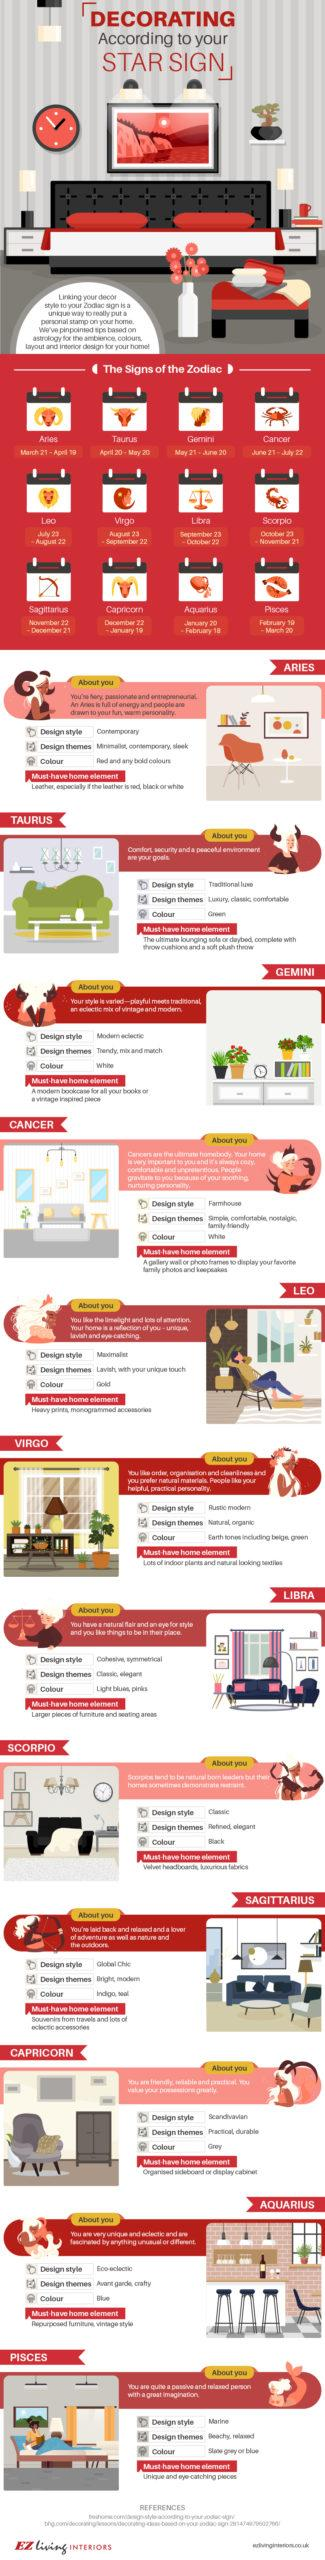 Decorating According to your Star Sign